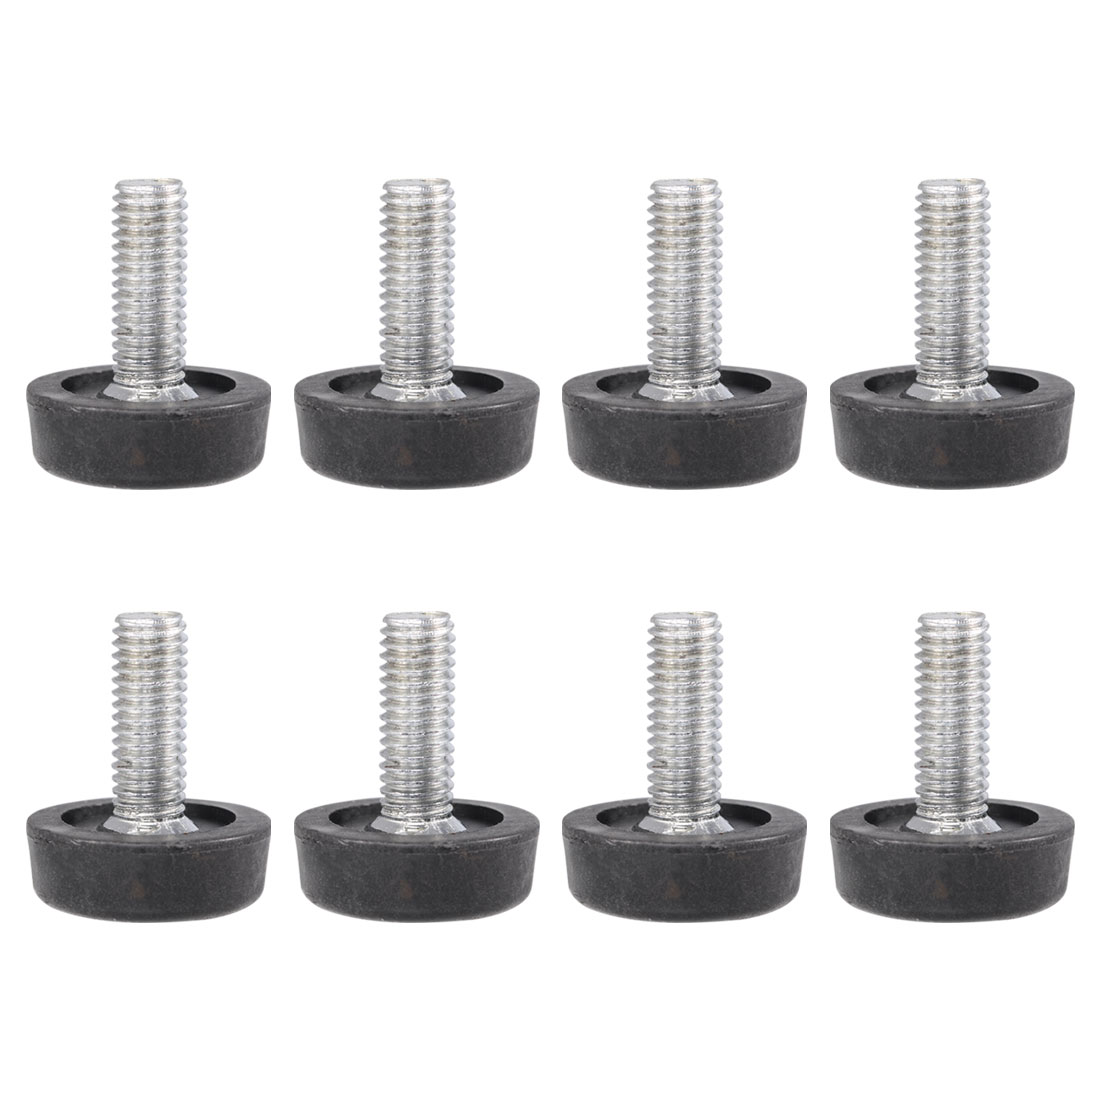 Home Metal Adjustable Furniture Table Desk Glide Leveling Foot Adjuster Pad Tool 23mm Base Dia 8pcs